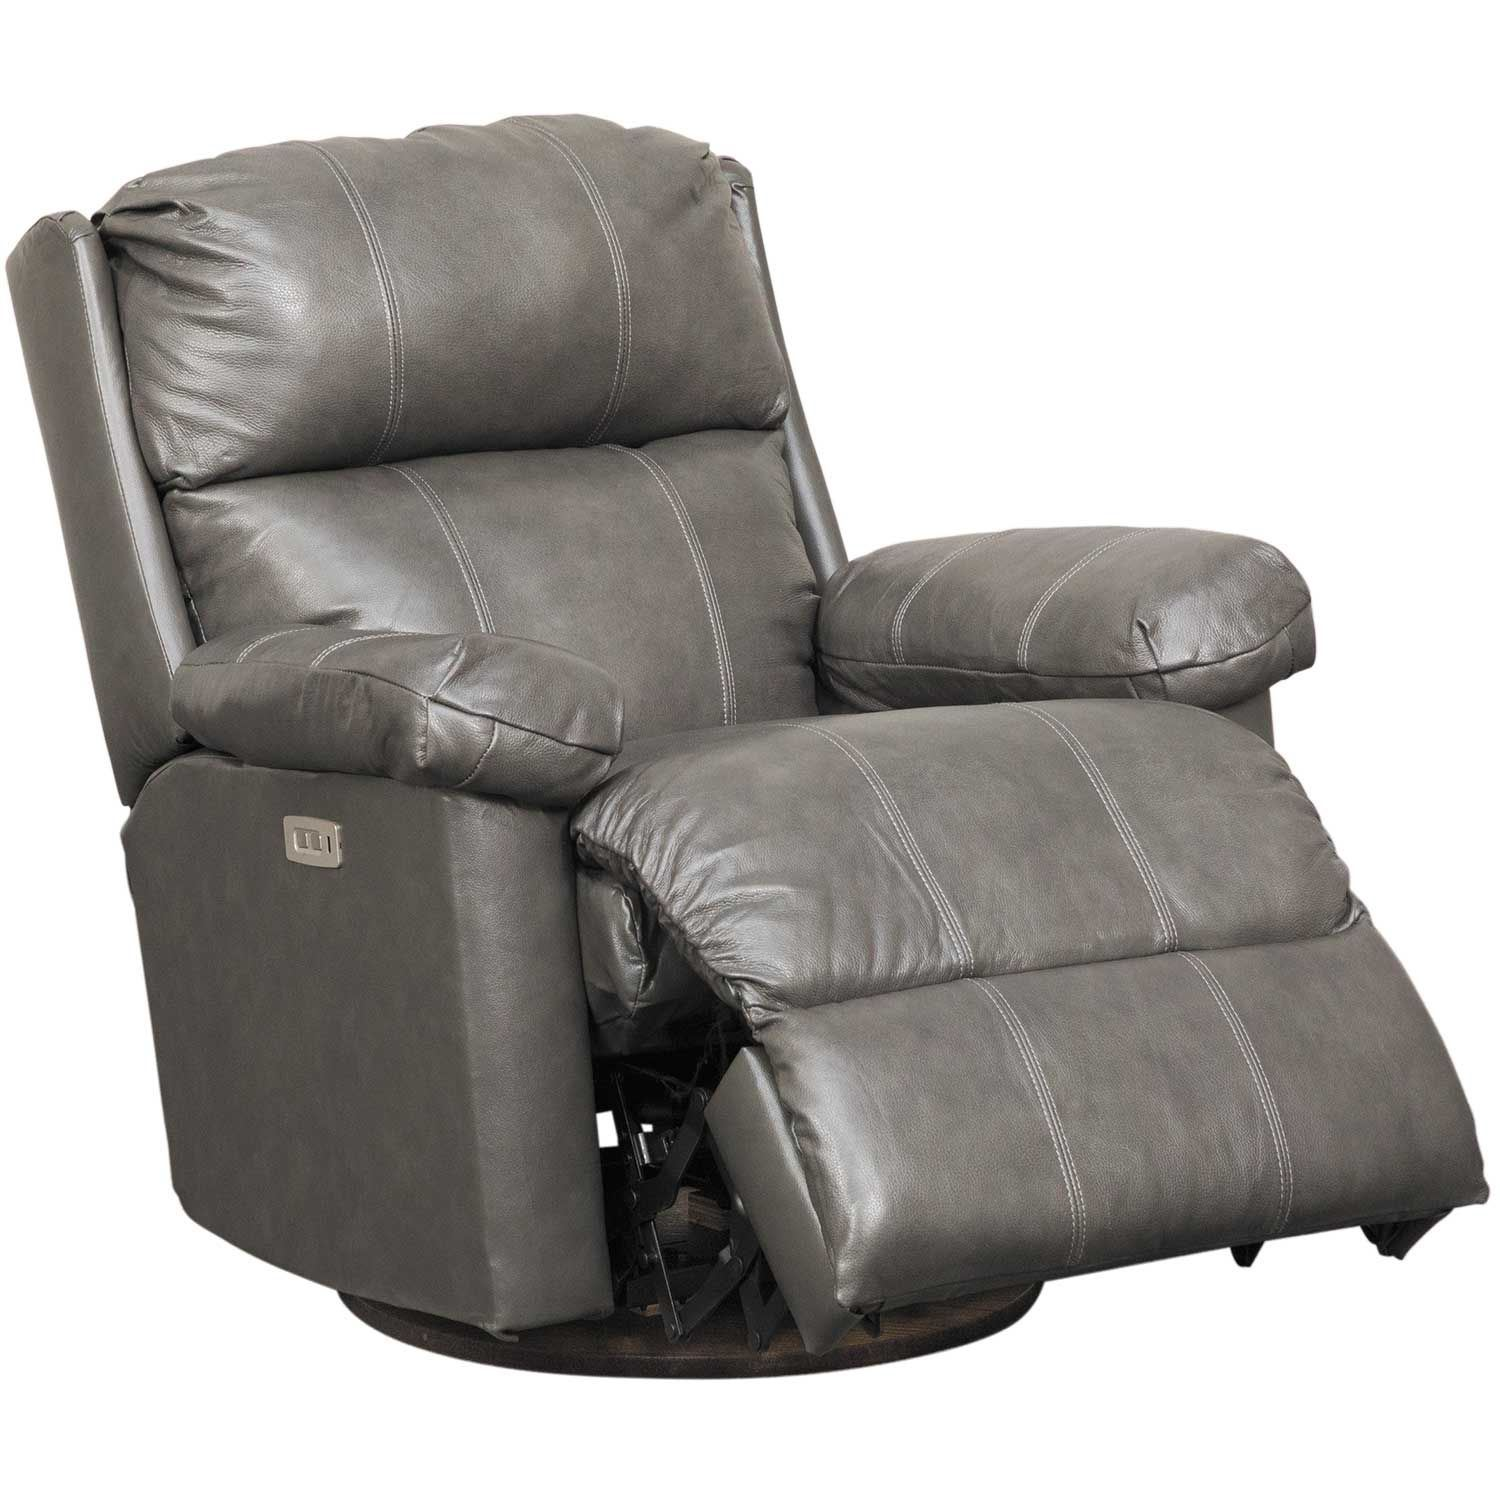 Picture of Soft Touch Granite Leather Glider Power Recliner